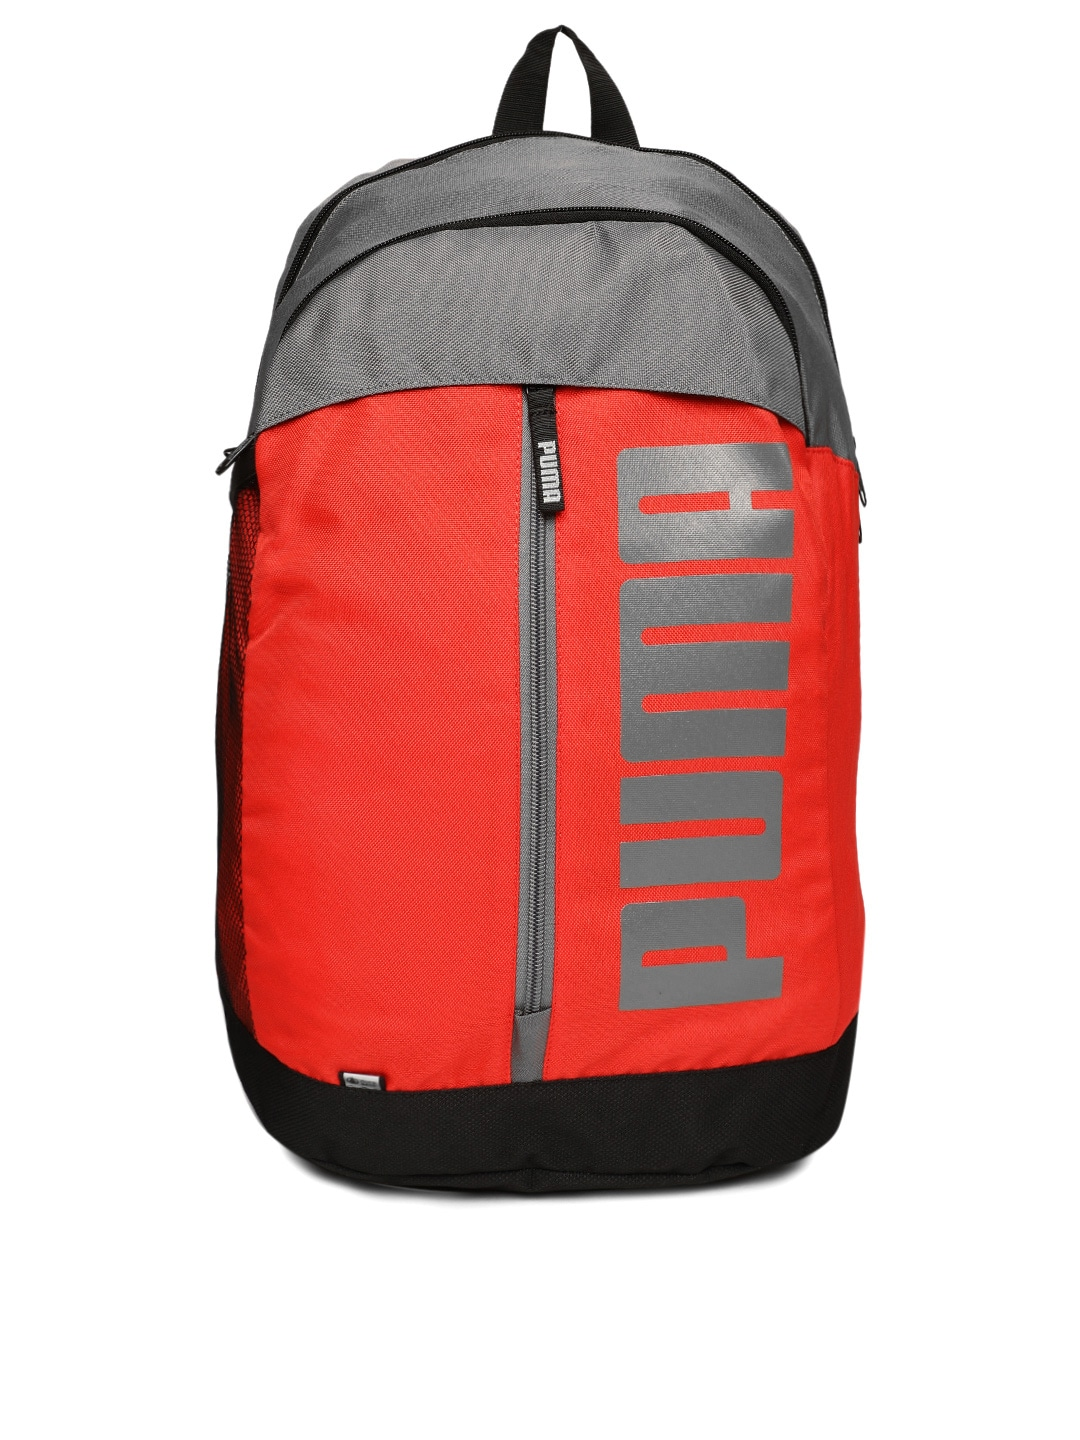 Bags Puma Backpacks - Buy Bags Puma Backpacks online in India c565634f10afd